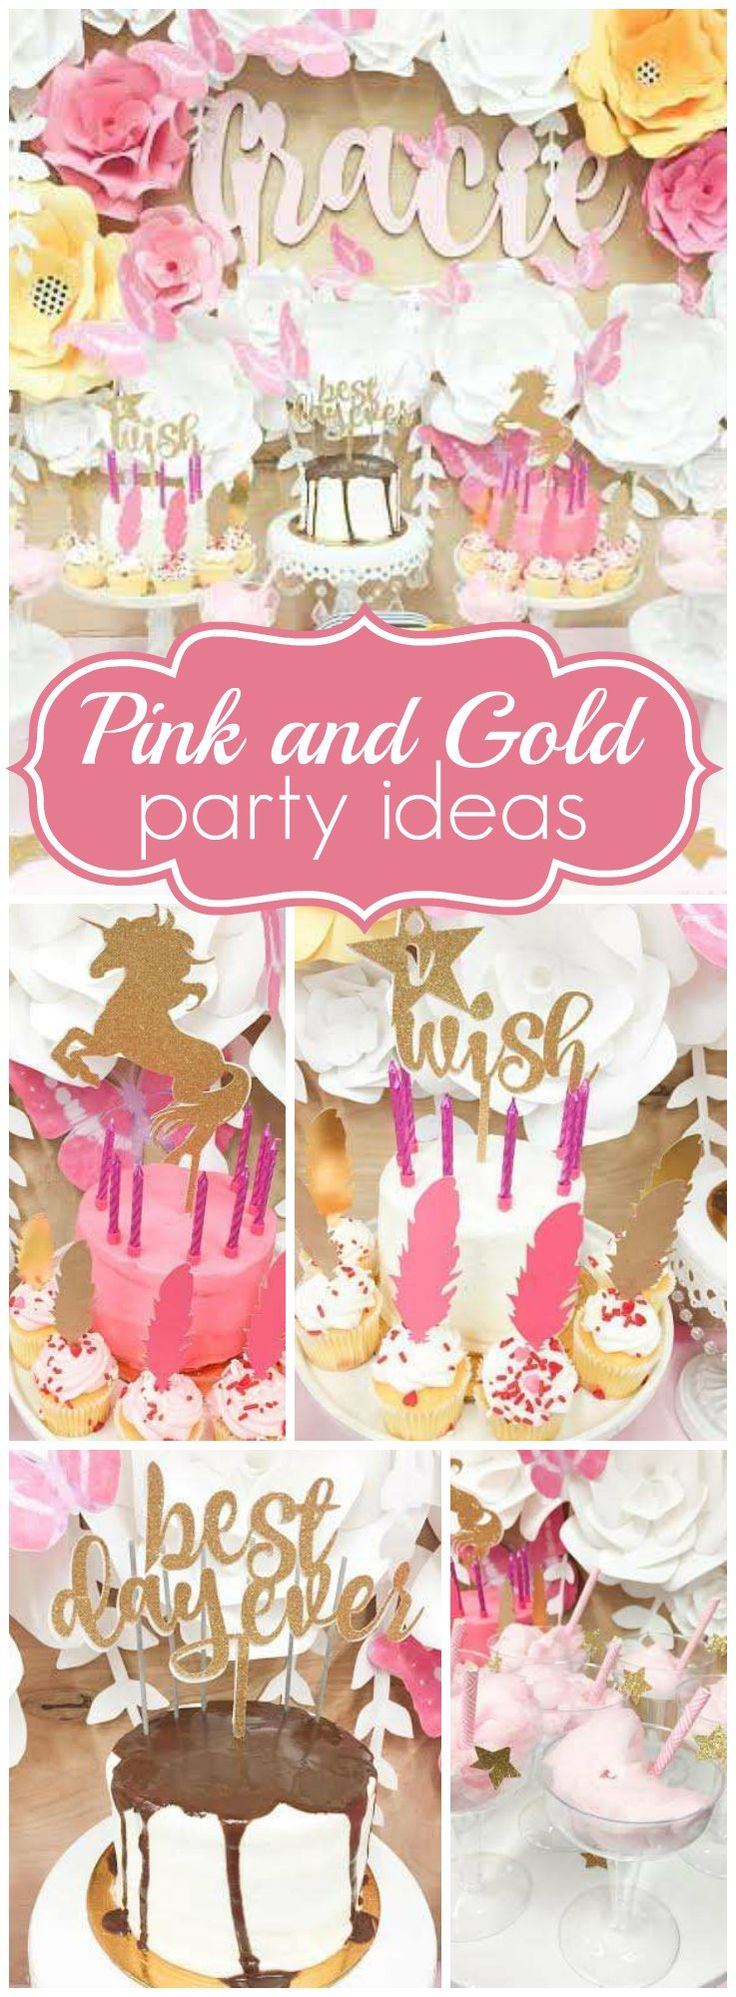 Love this elaborate pink and gold girl birthday party!